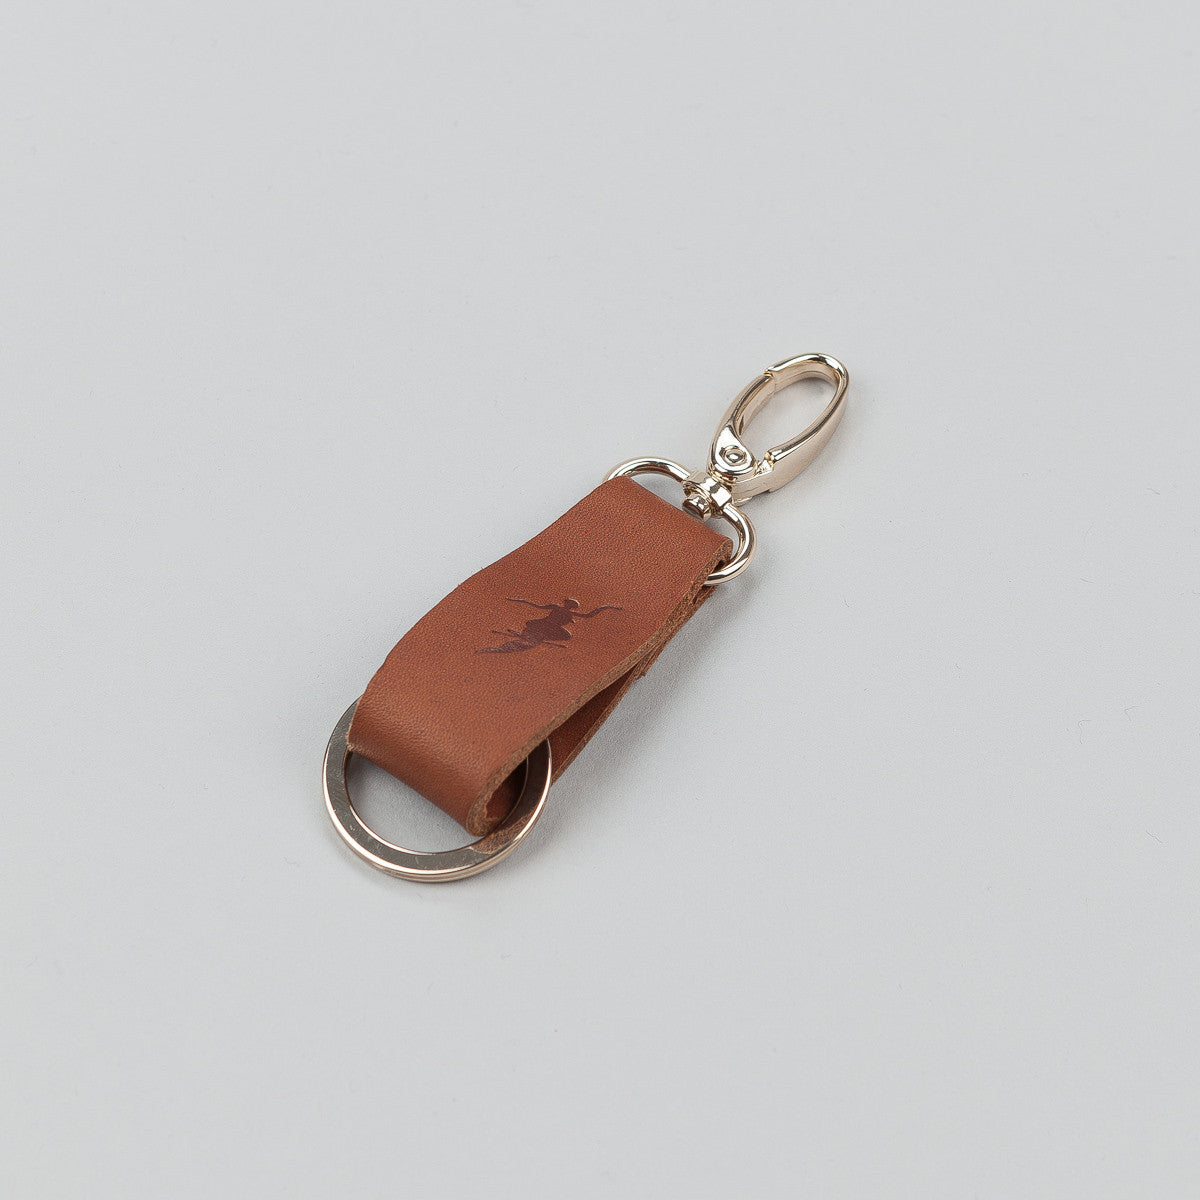 Polar No Comply Key Chain - Brown / Gold